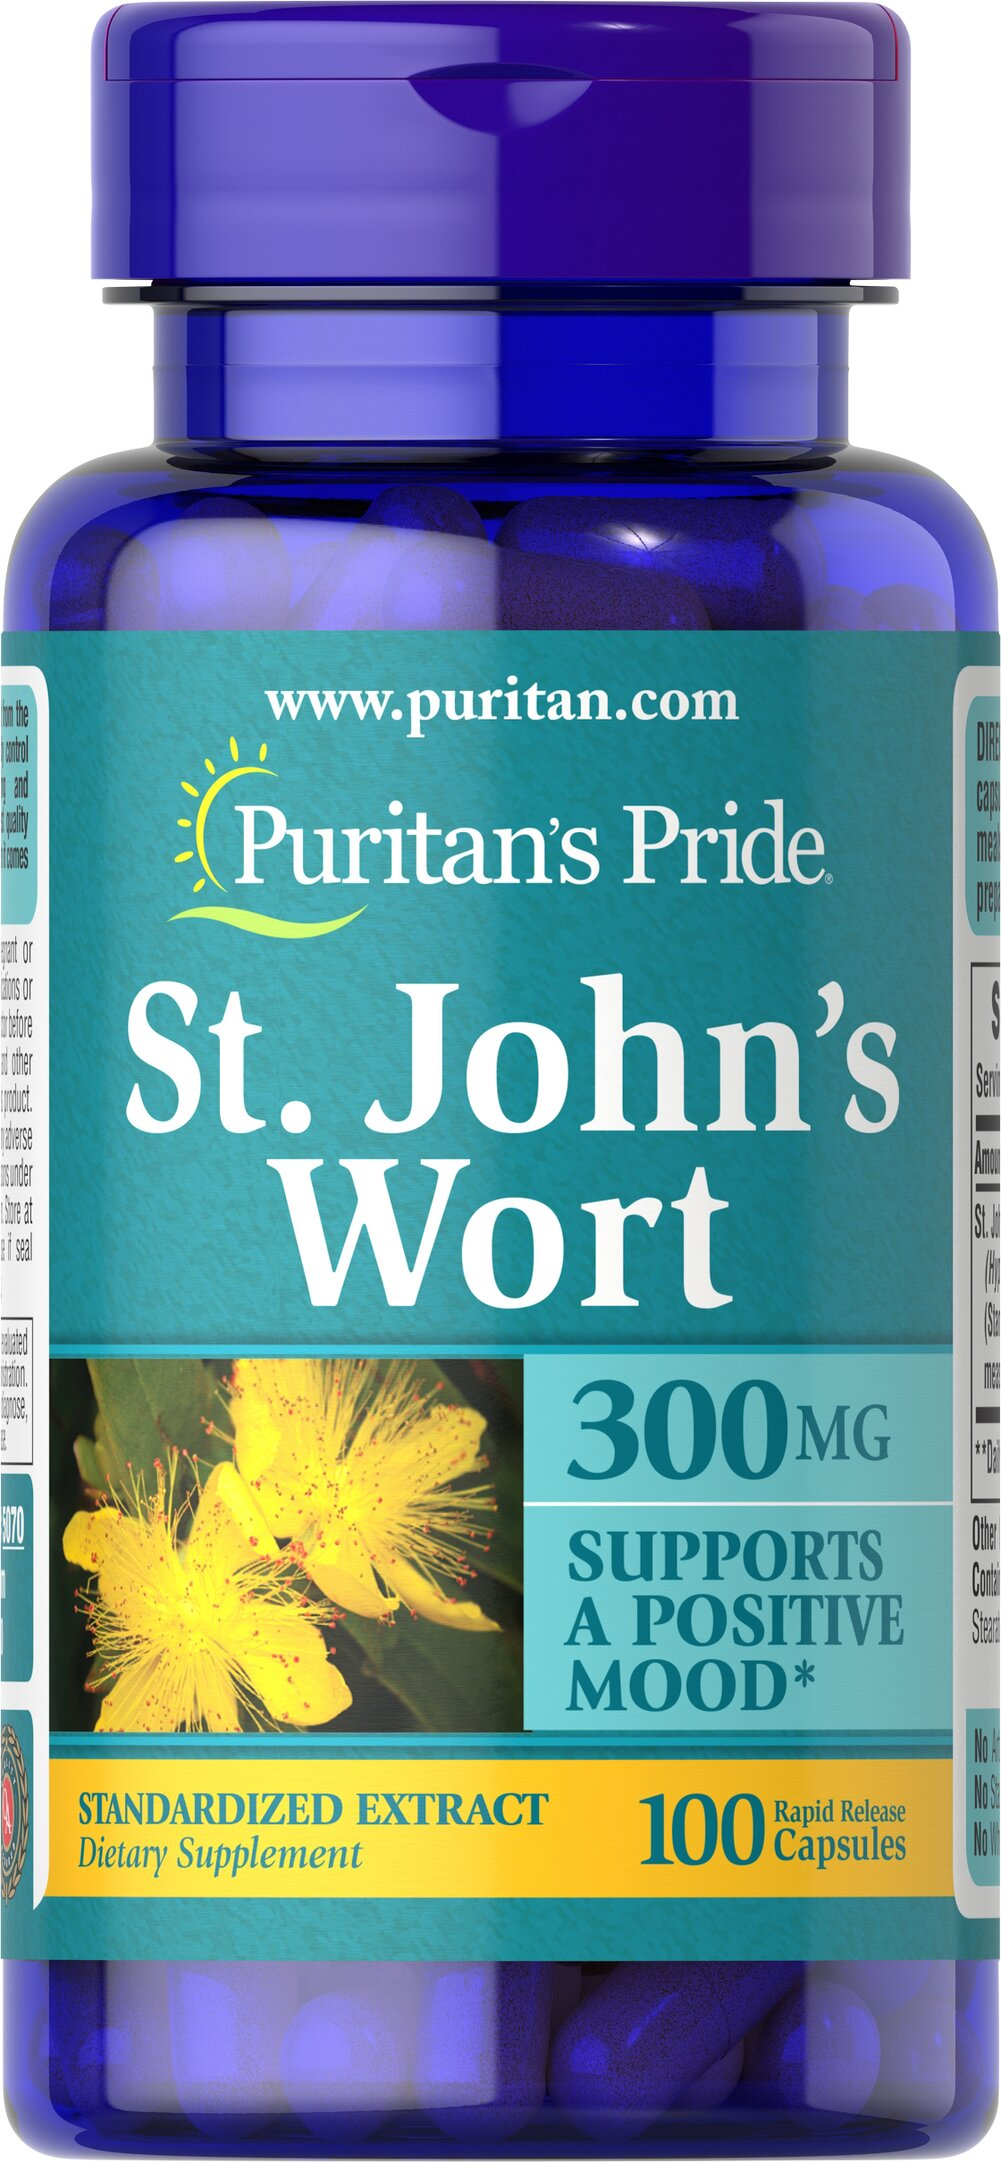 St. John's Wort Standardized Extract 300 mg <p>St. John's Wort has been used for centuries as a tonic to promote mental well-being and peaceful mood.** St. John's Wort can help maintain a positive mood and is perfect for anyone experiencing occasional anxiety and everyday stress.**</p> 100 Capsules 300 mg $14.99